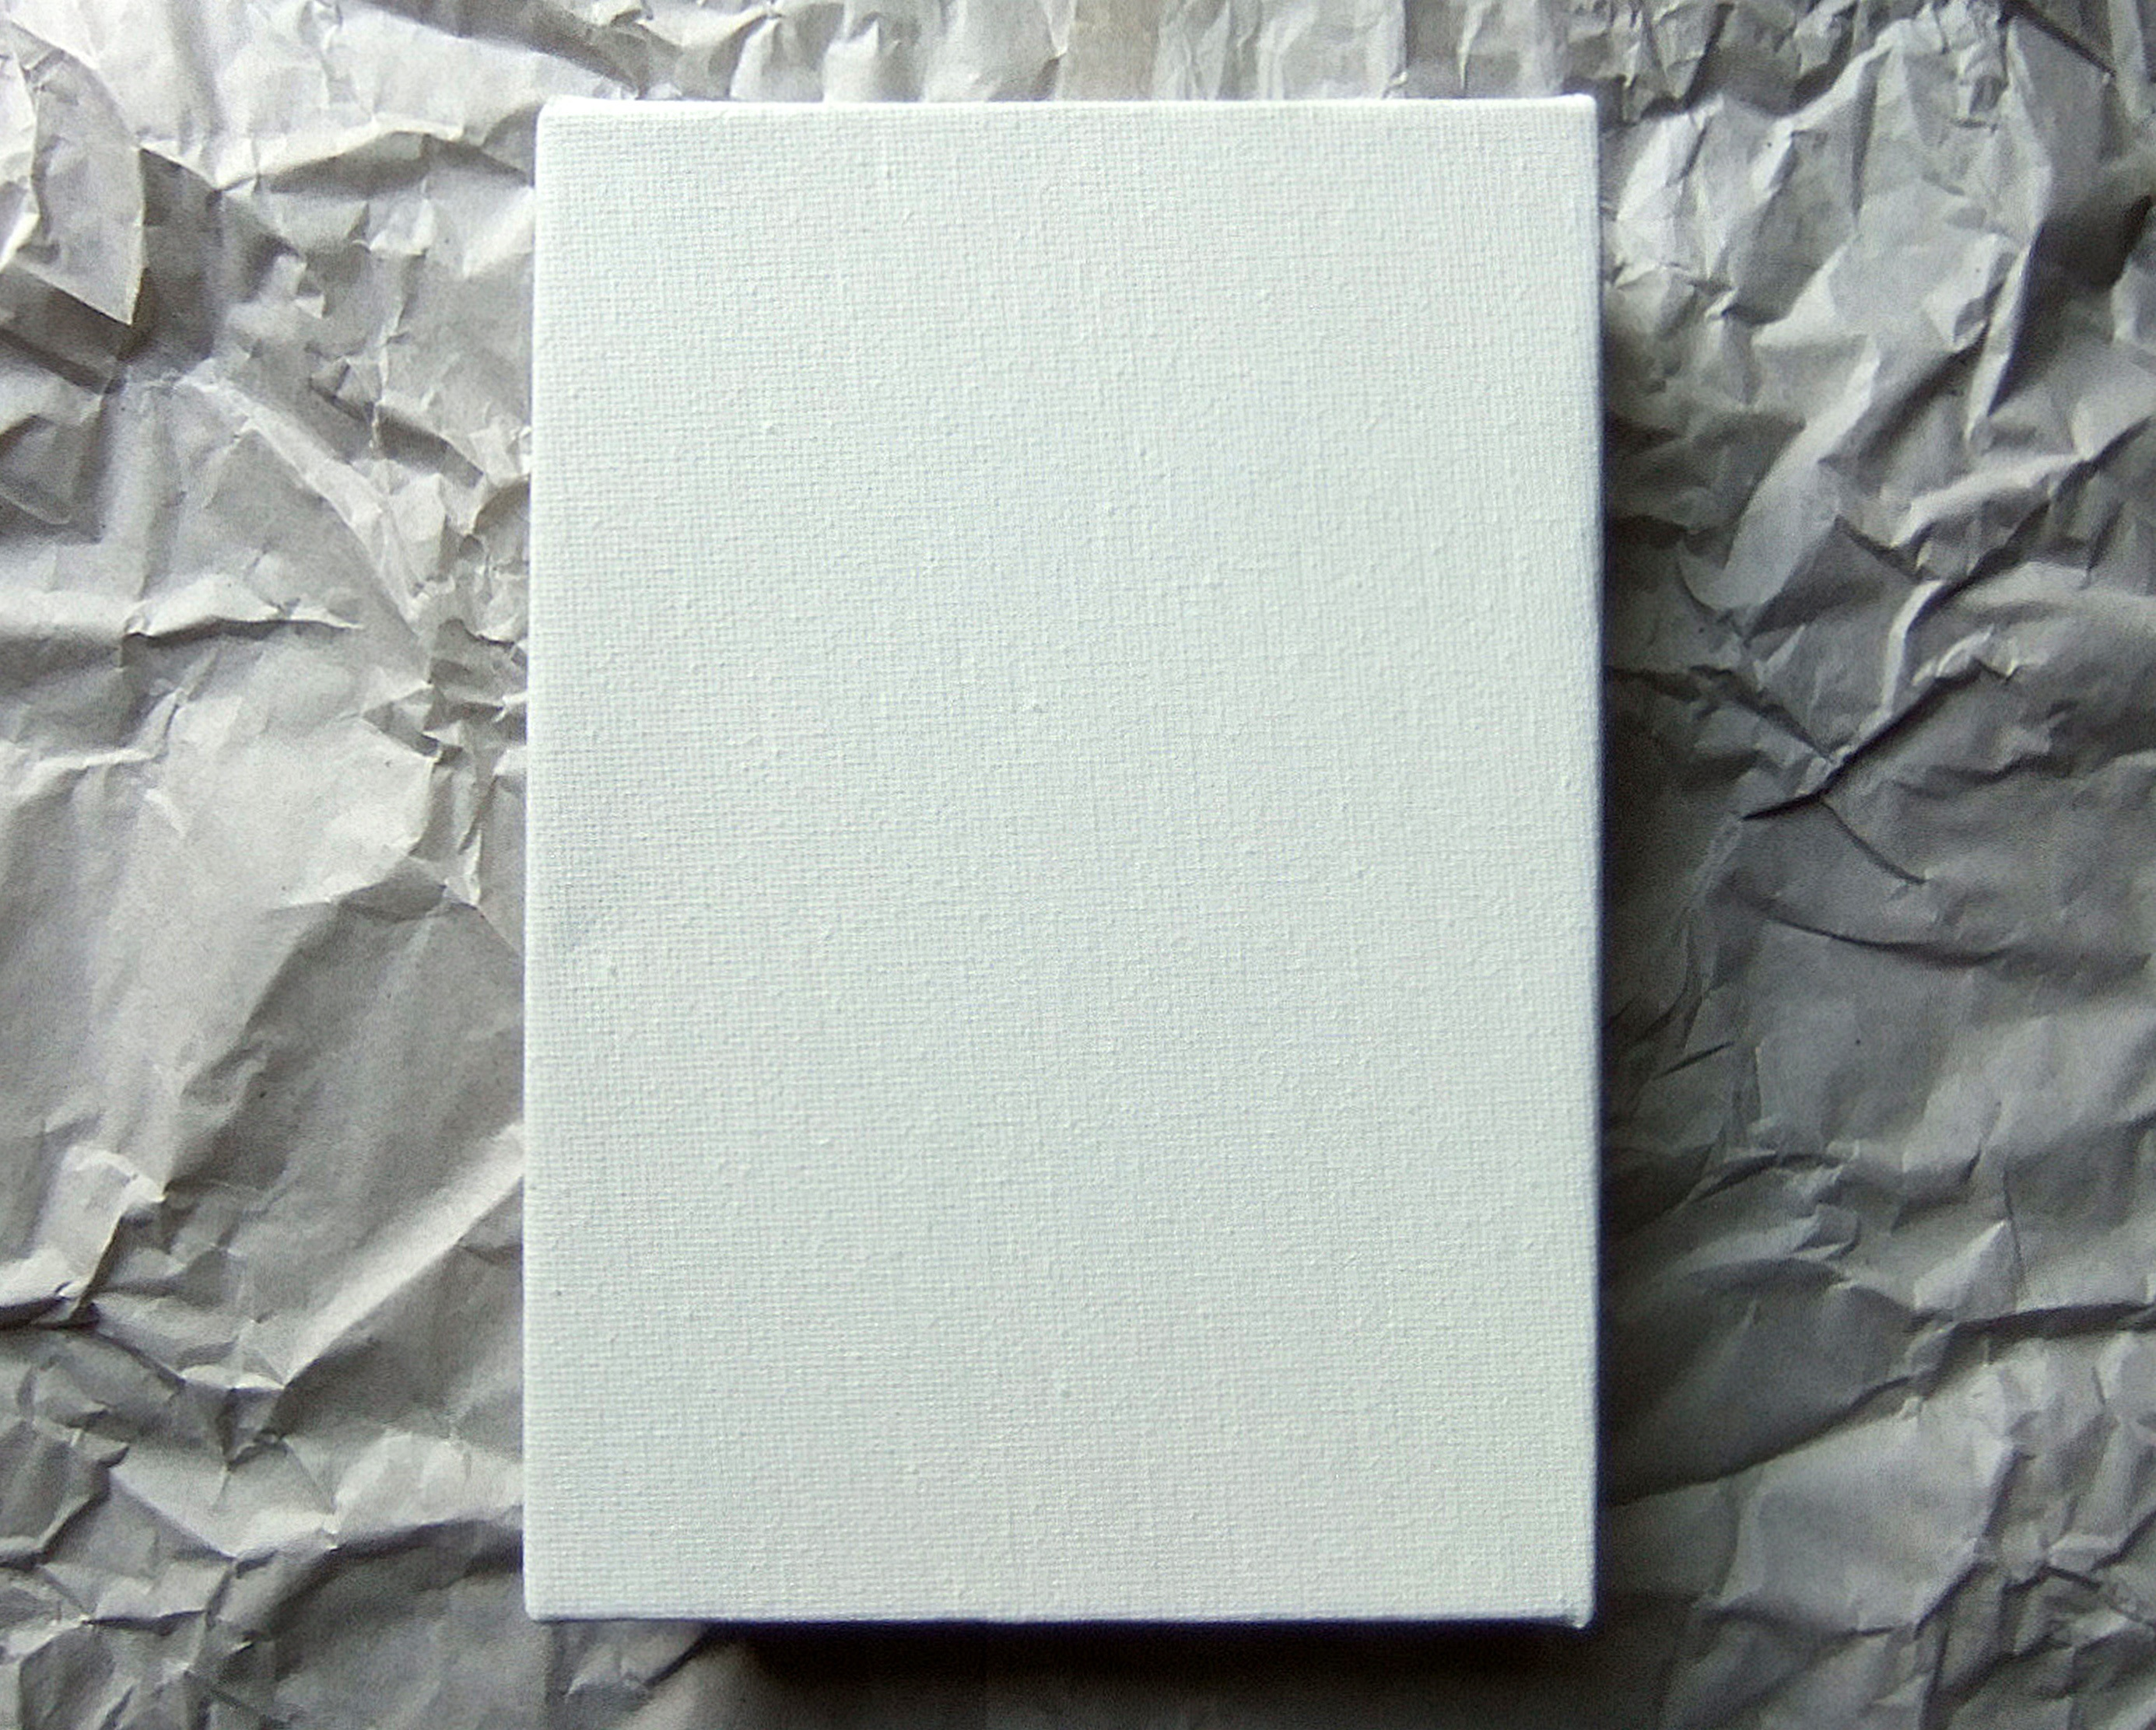 An unprinted canvas